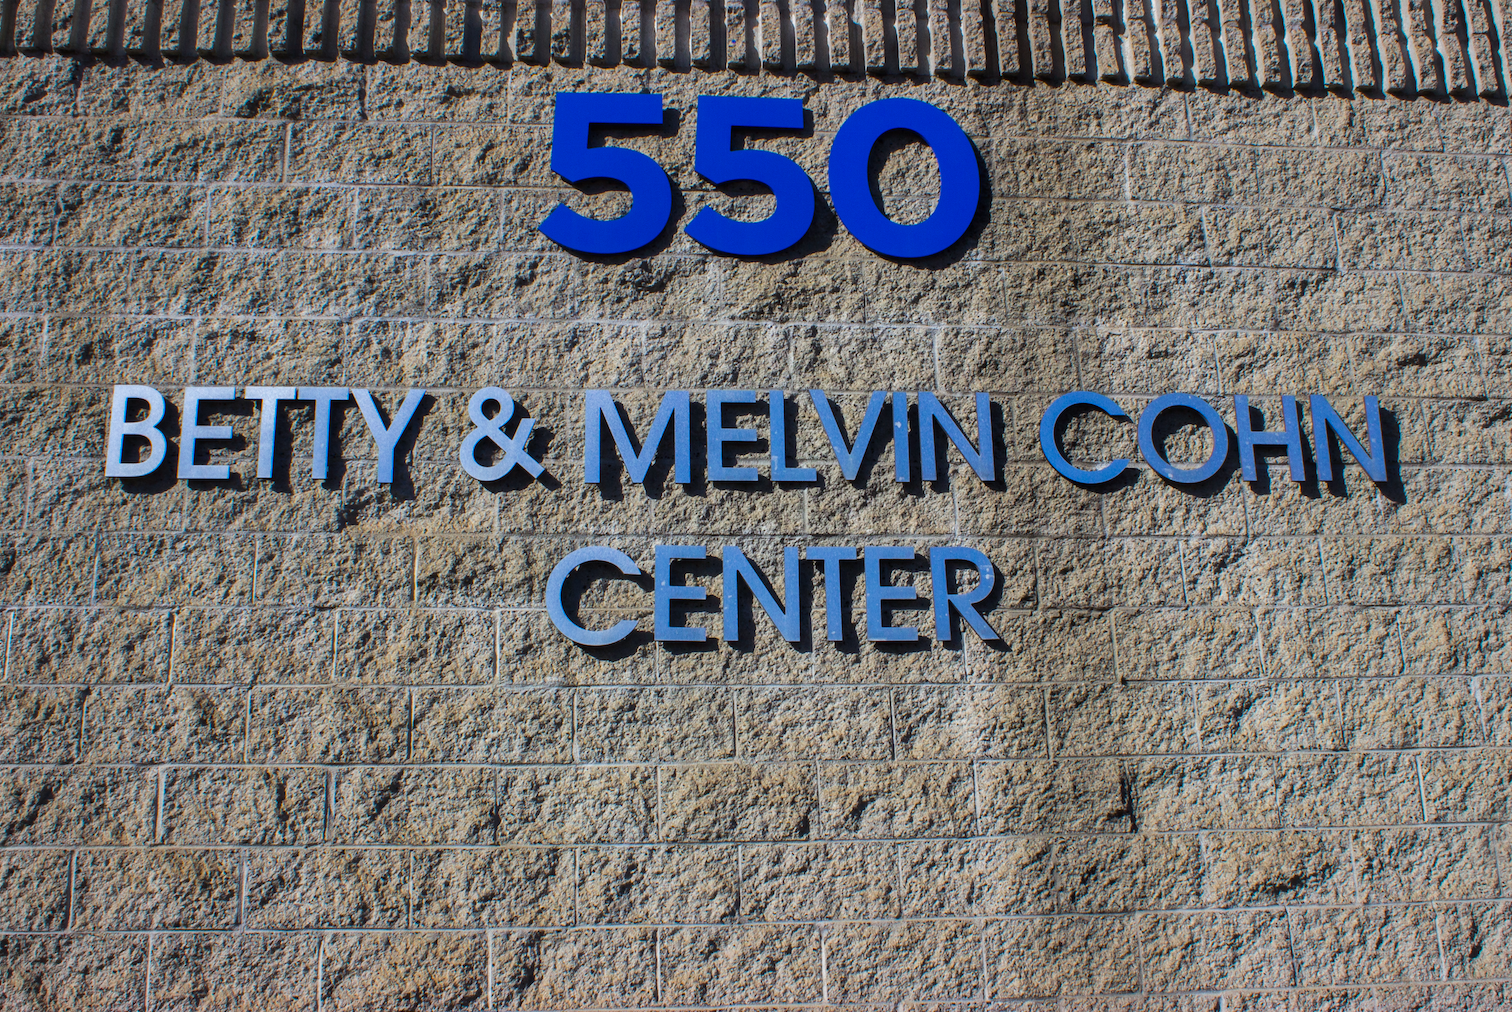 550 Betty and Melvin Cohn Center